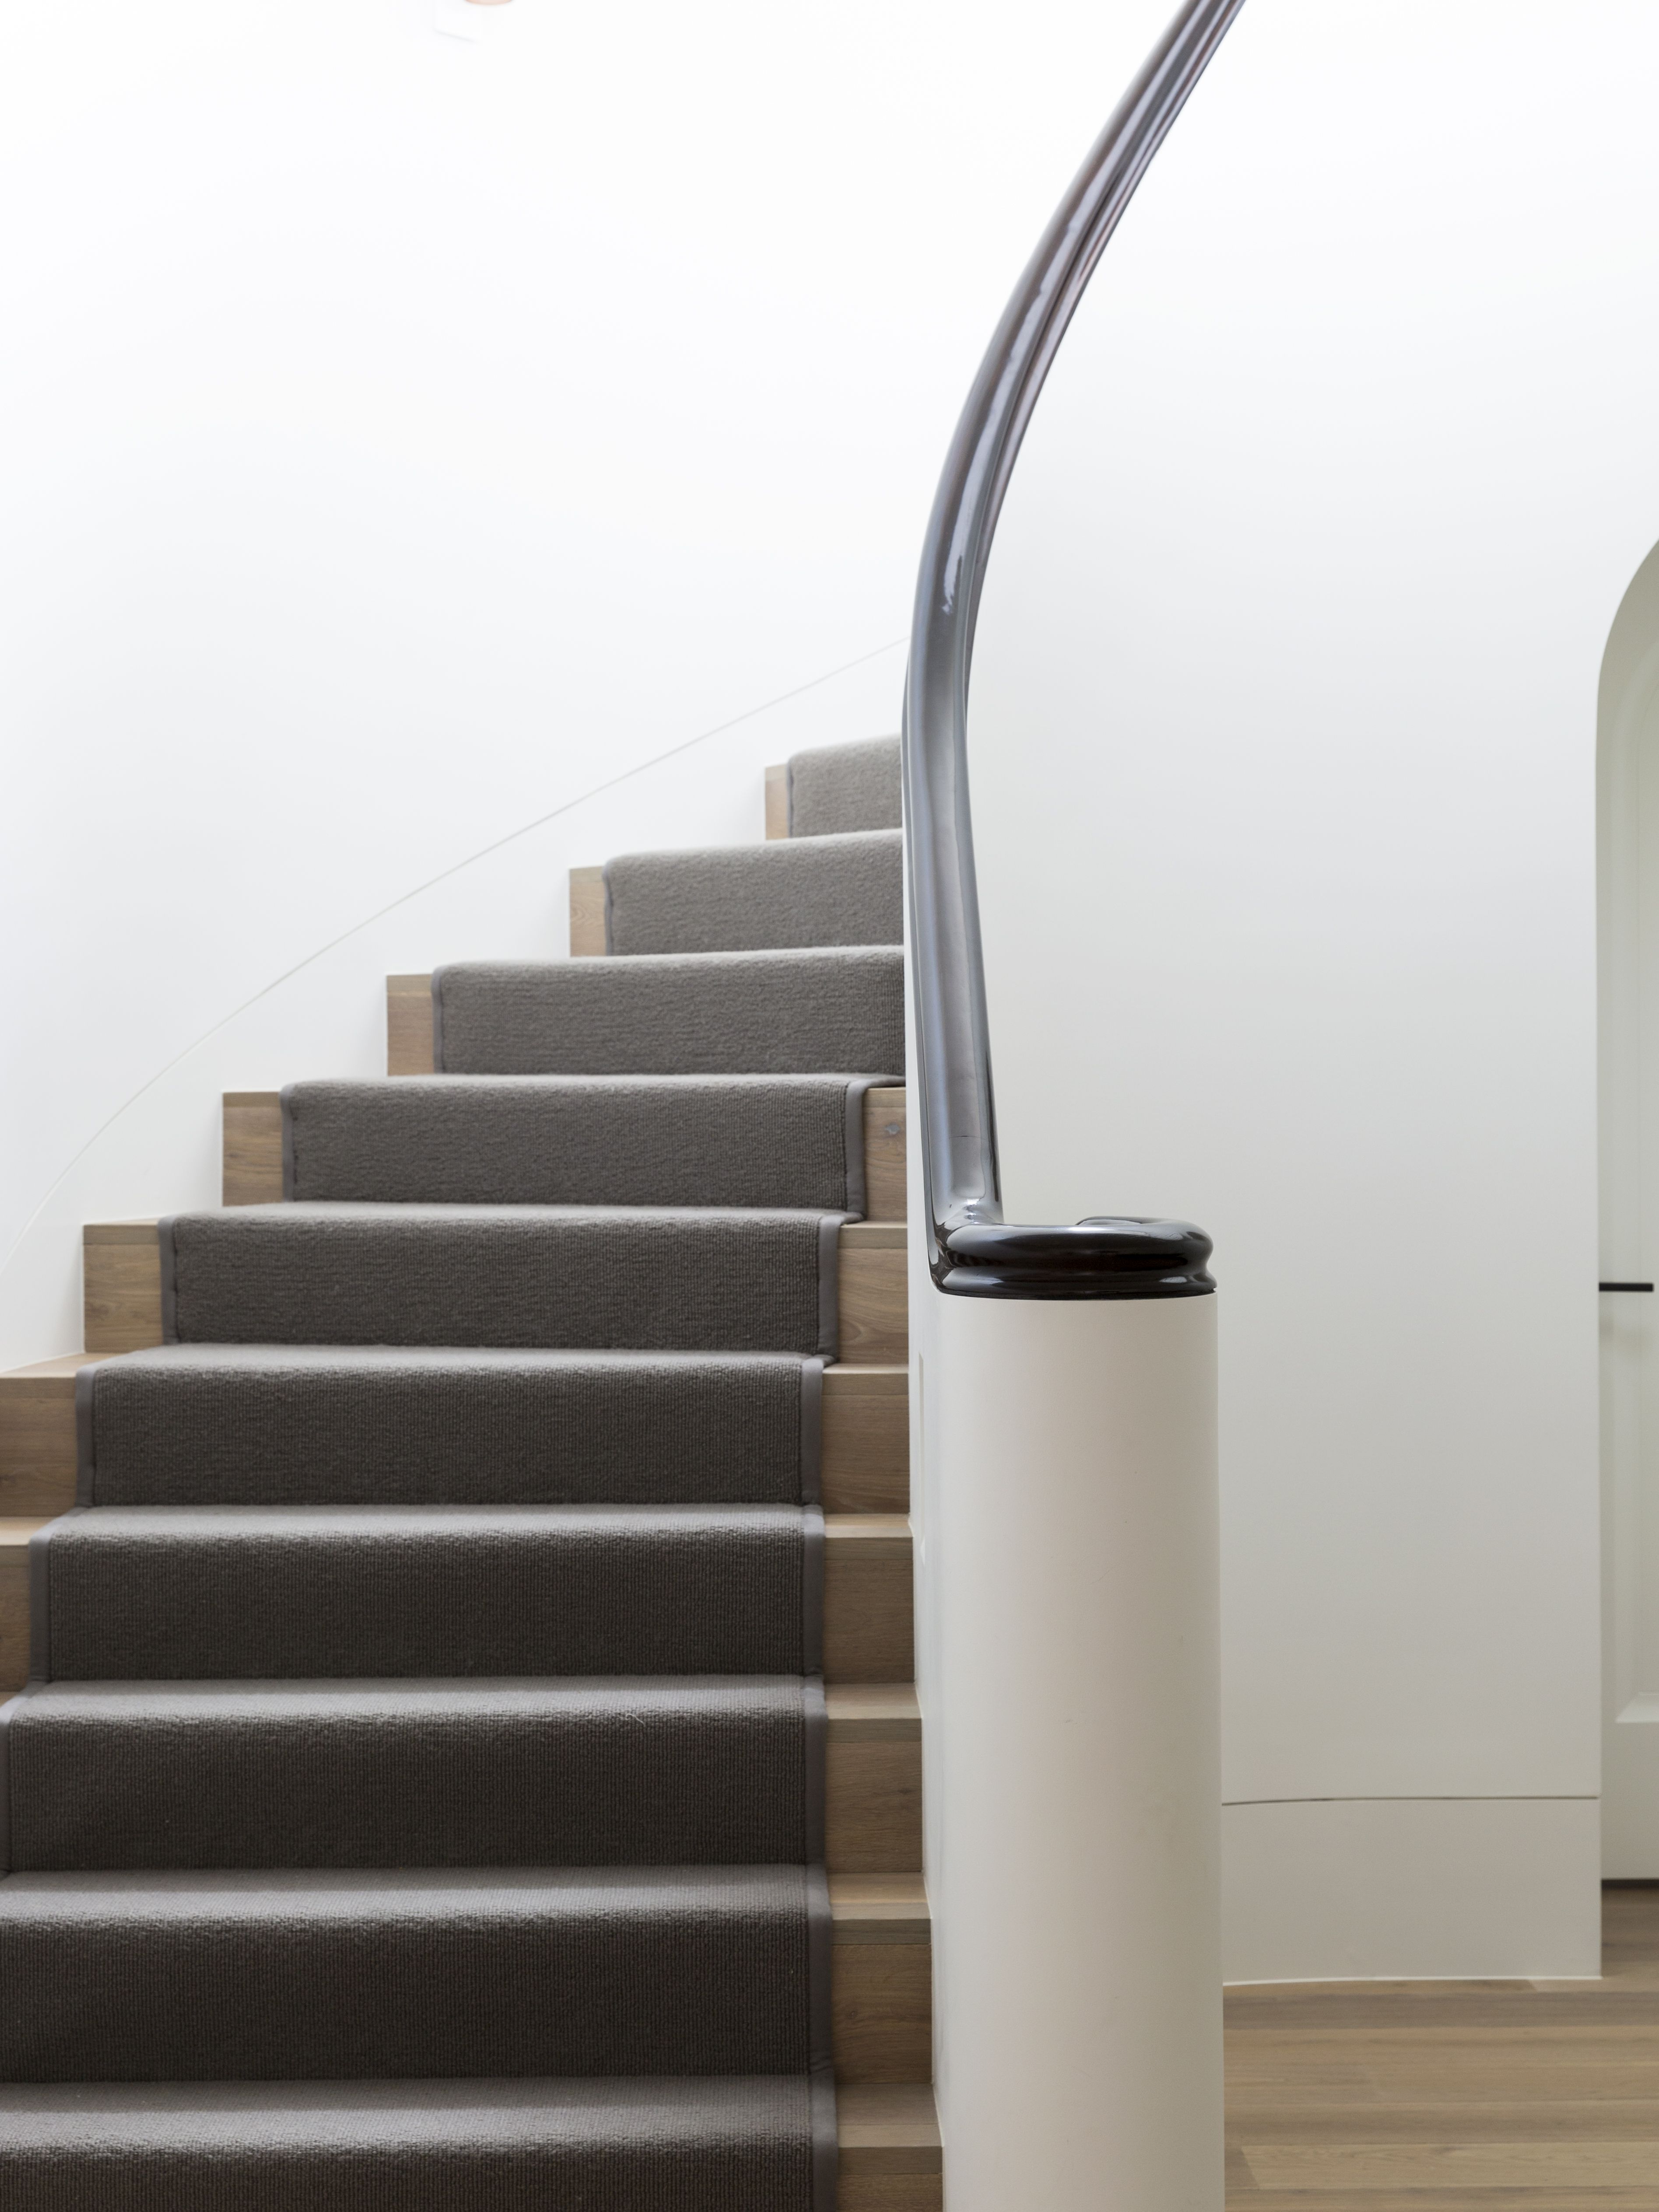 Feature - Stairs - Staircase - Plaster Walls - Curved